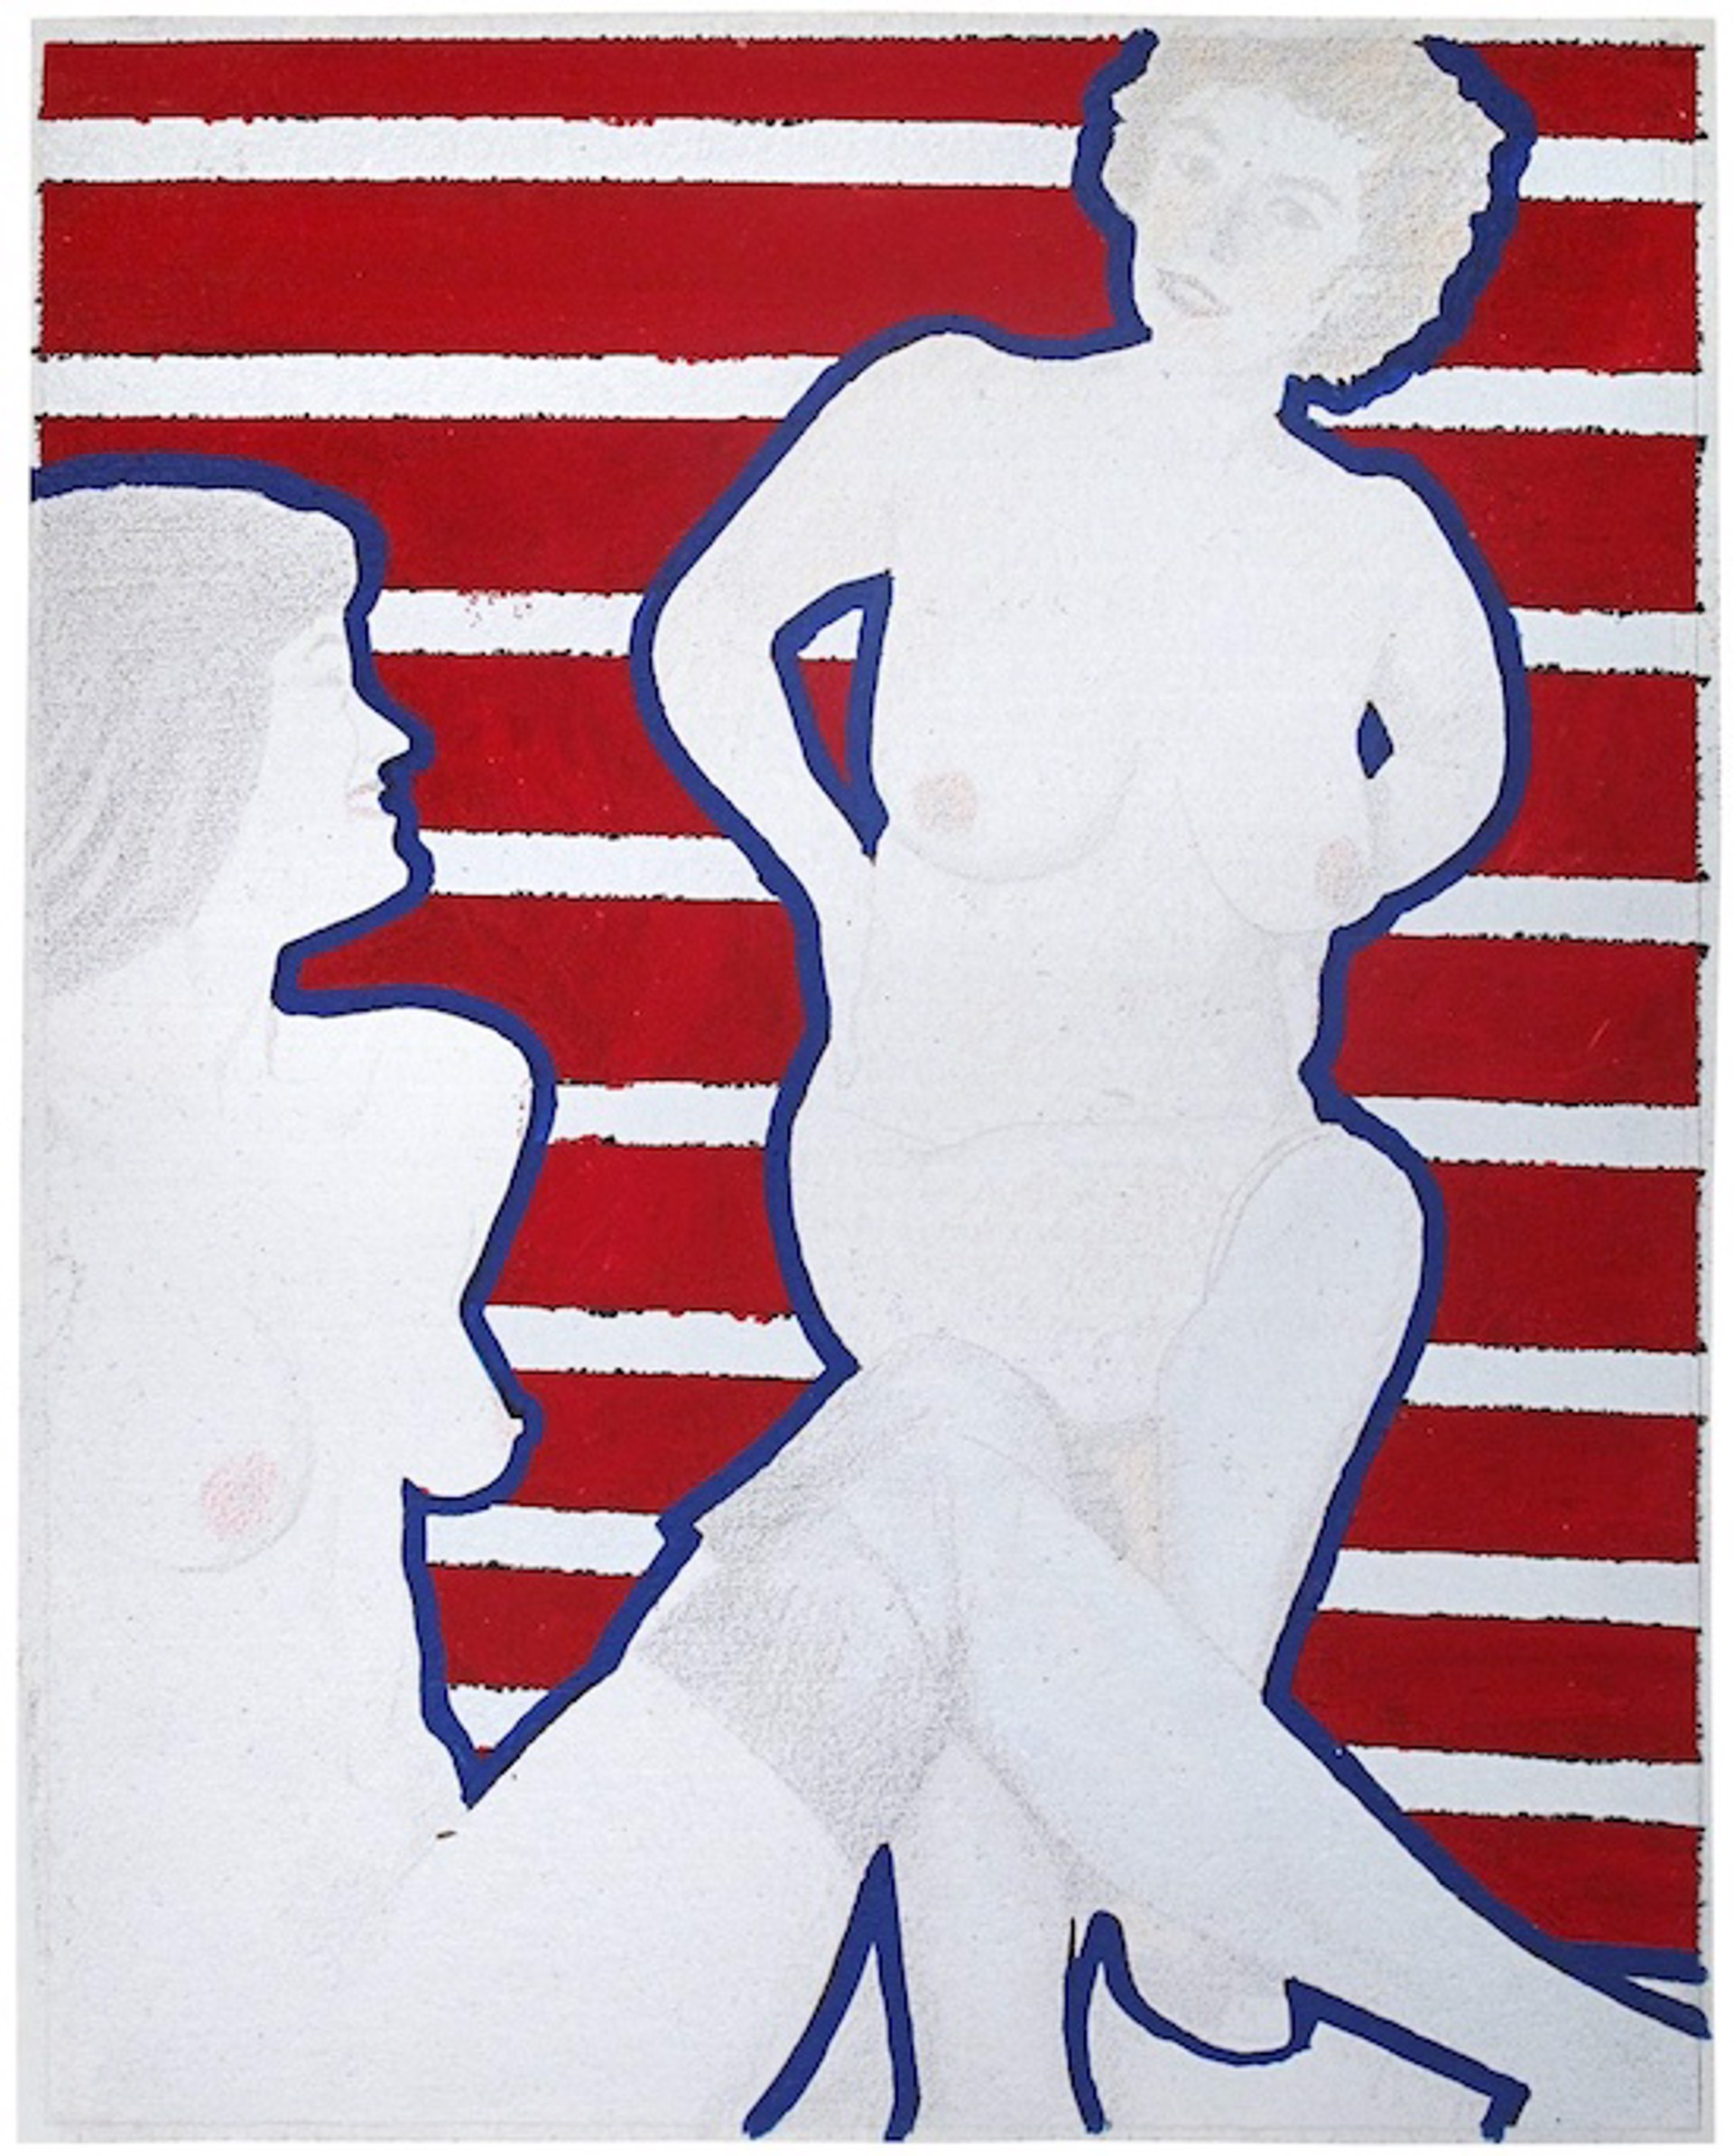 Two Blue Nudes by David Chapin